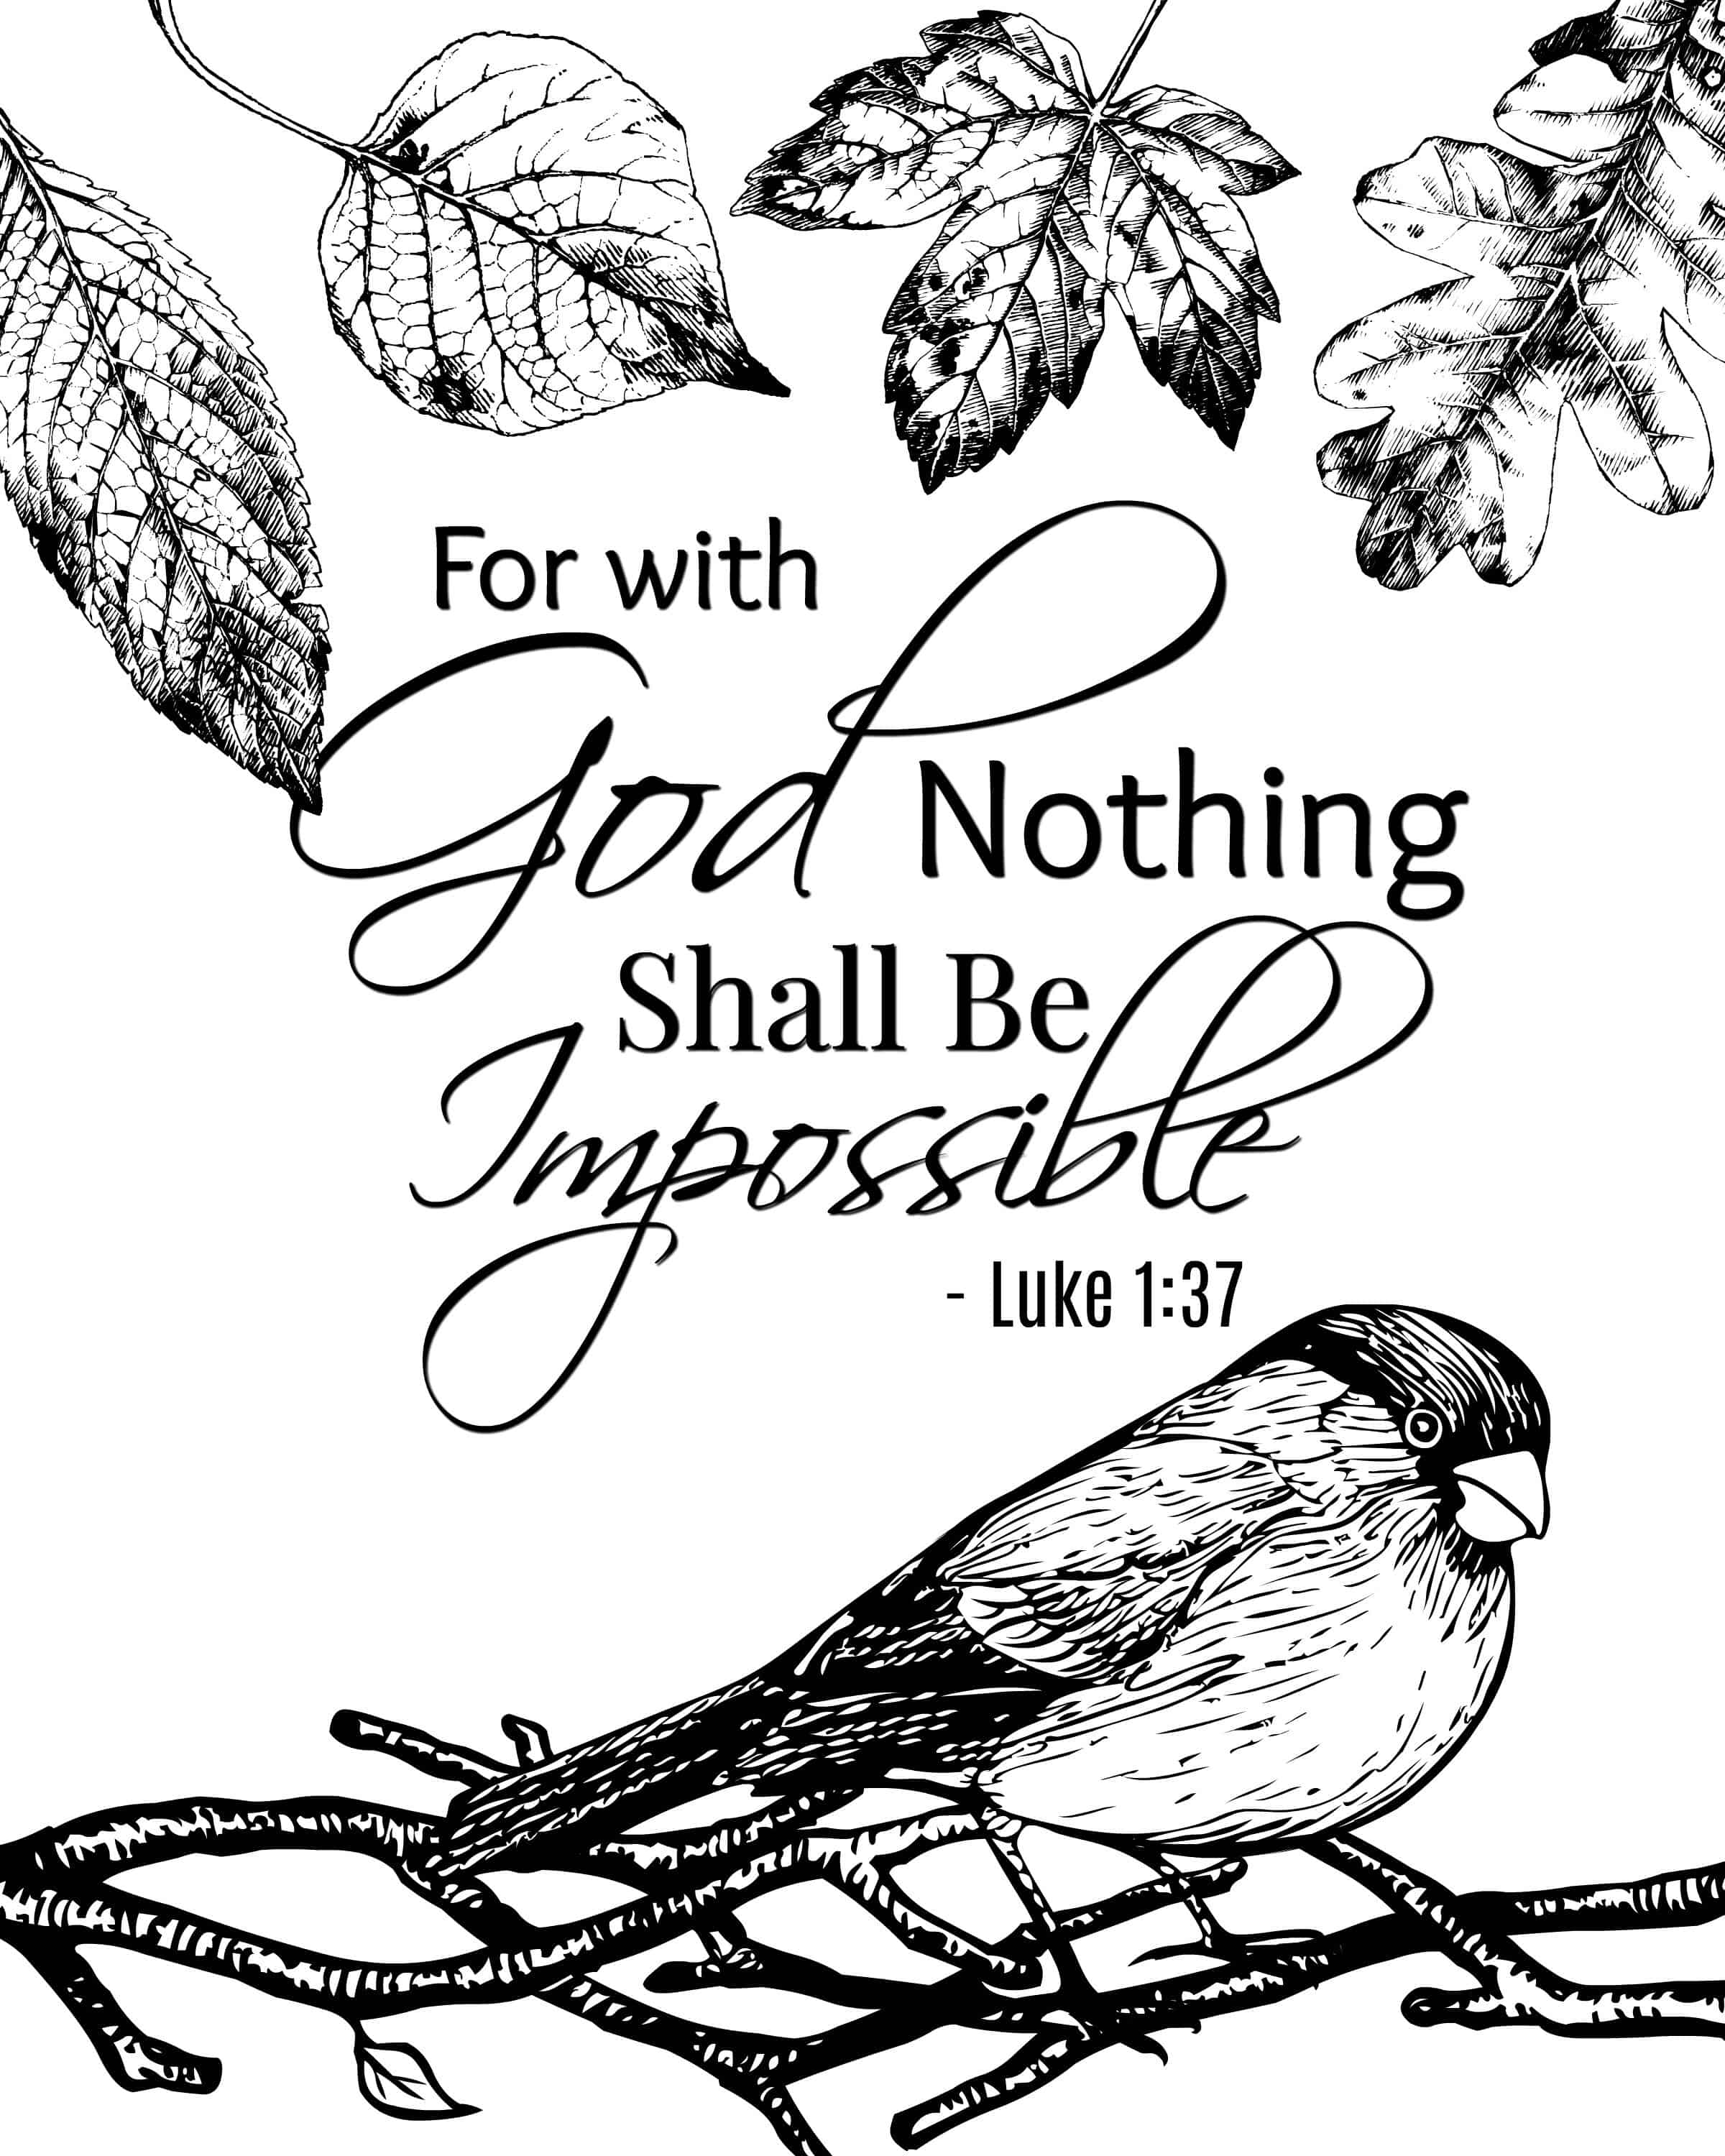 free printable bible coloring pages for children must have free bible verse printable coloring sheets printable bible coloring free for children pages